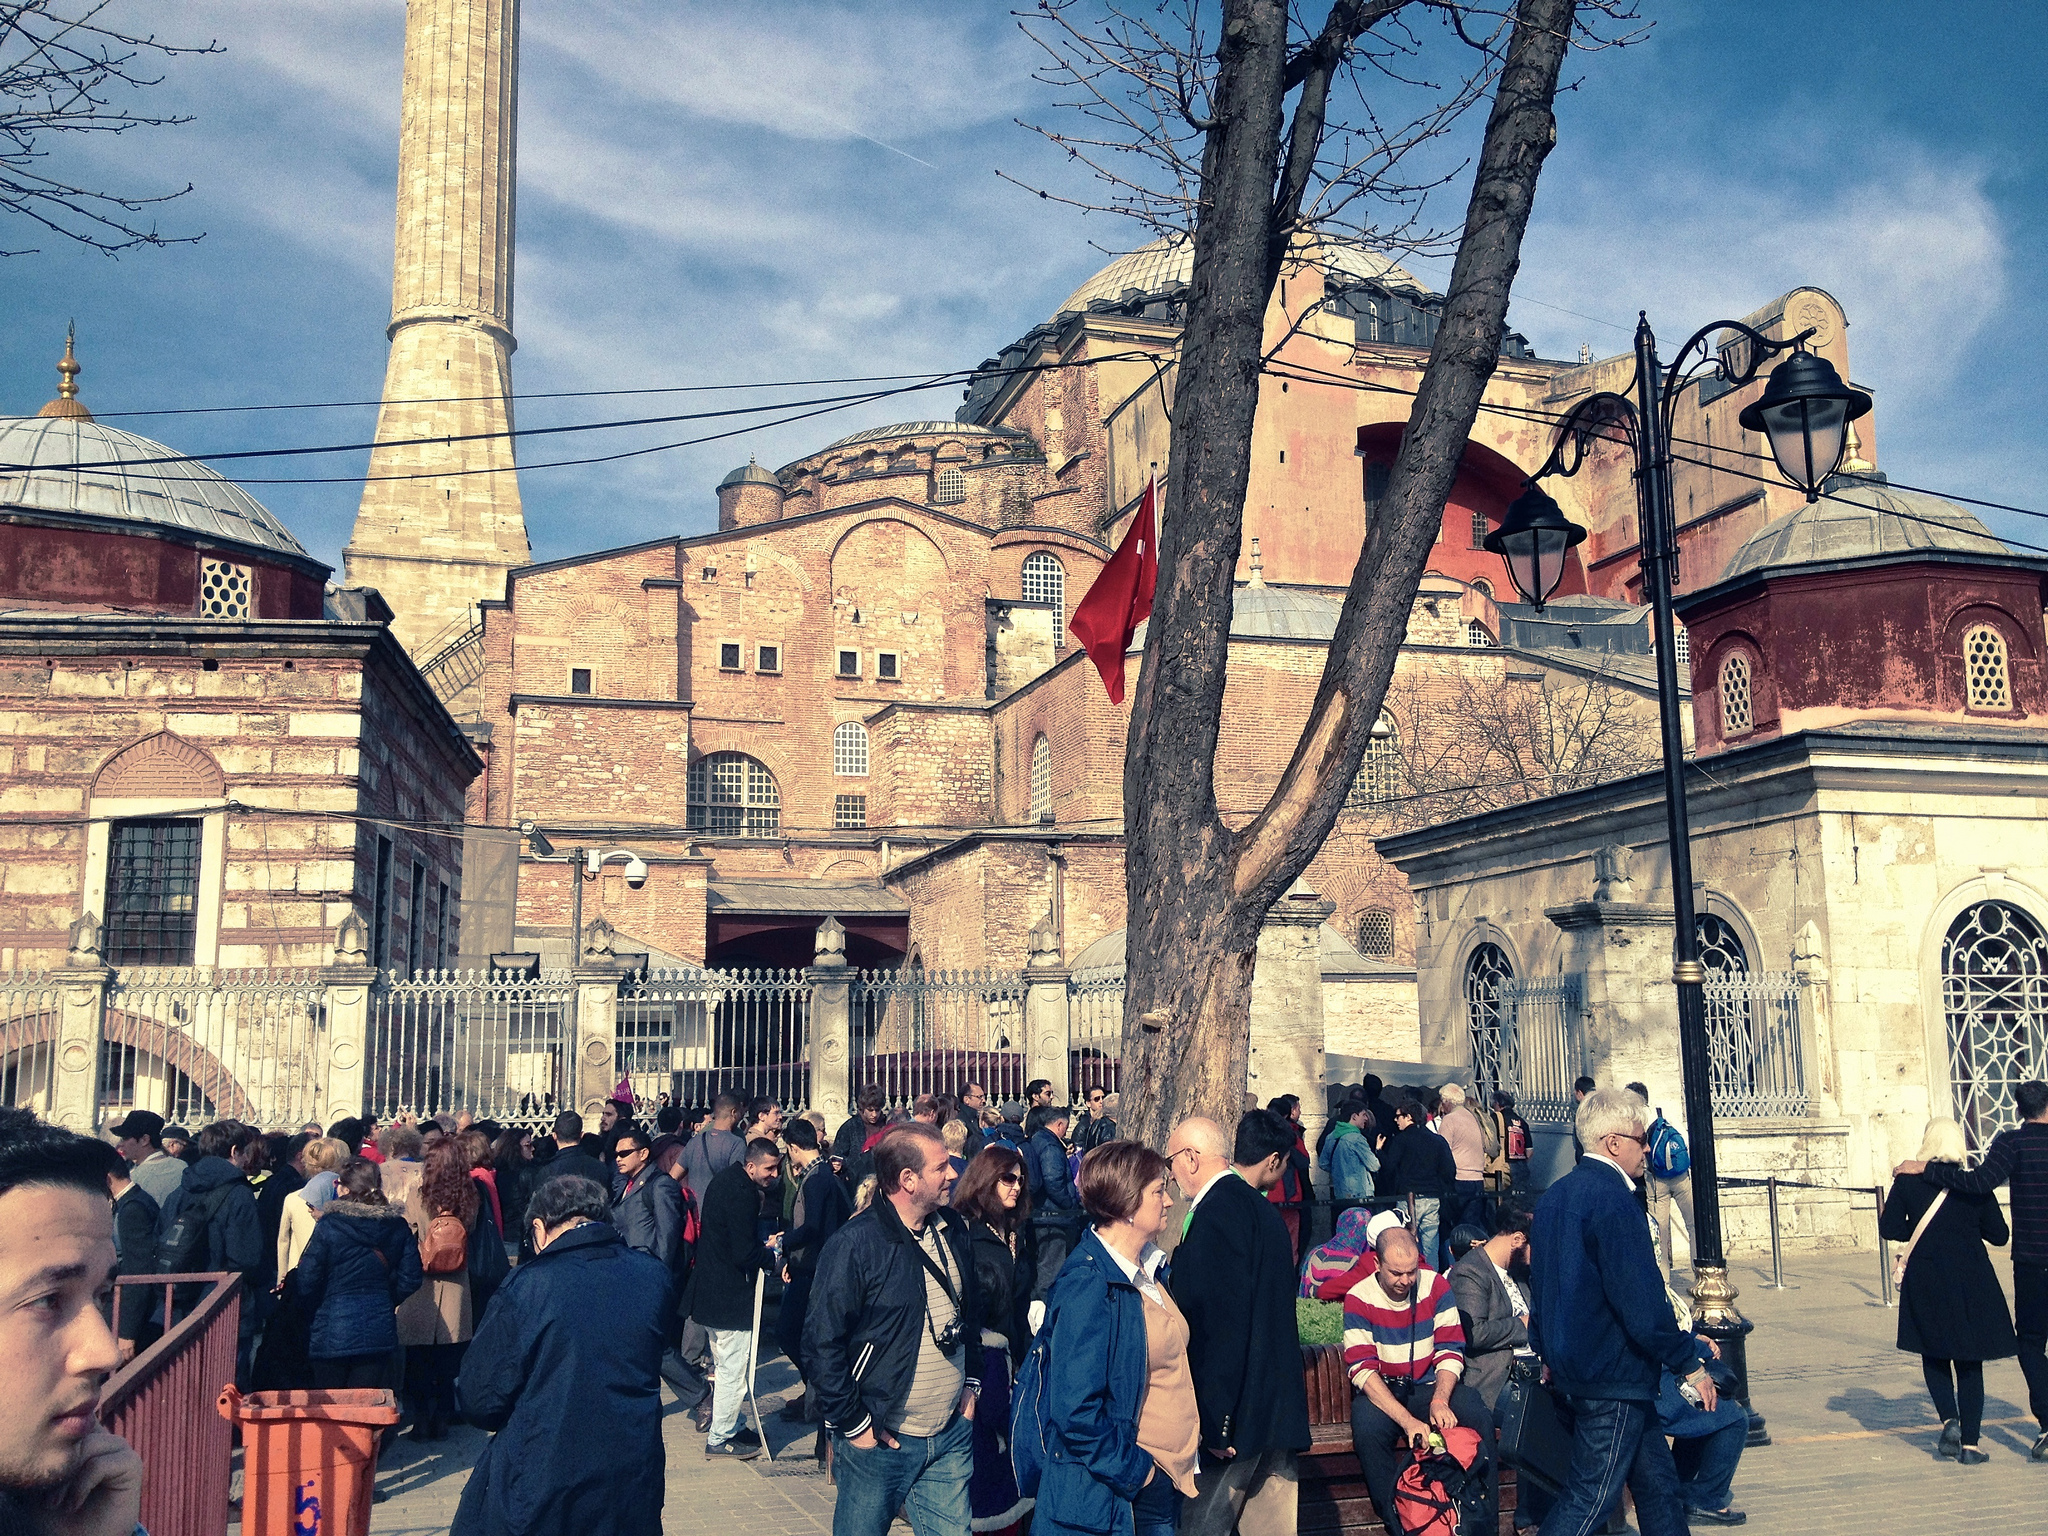 Tourists in front of Aya Sofya